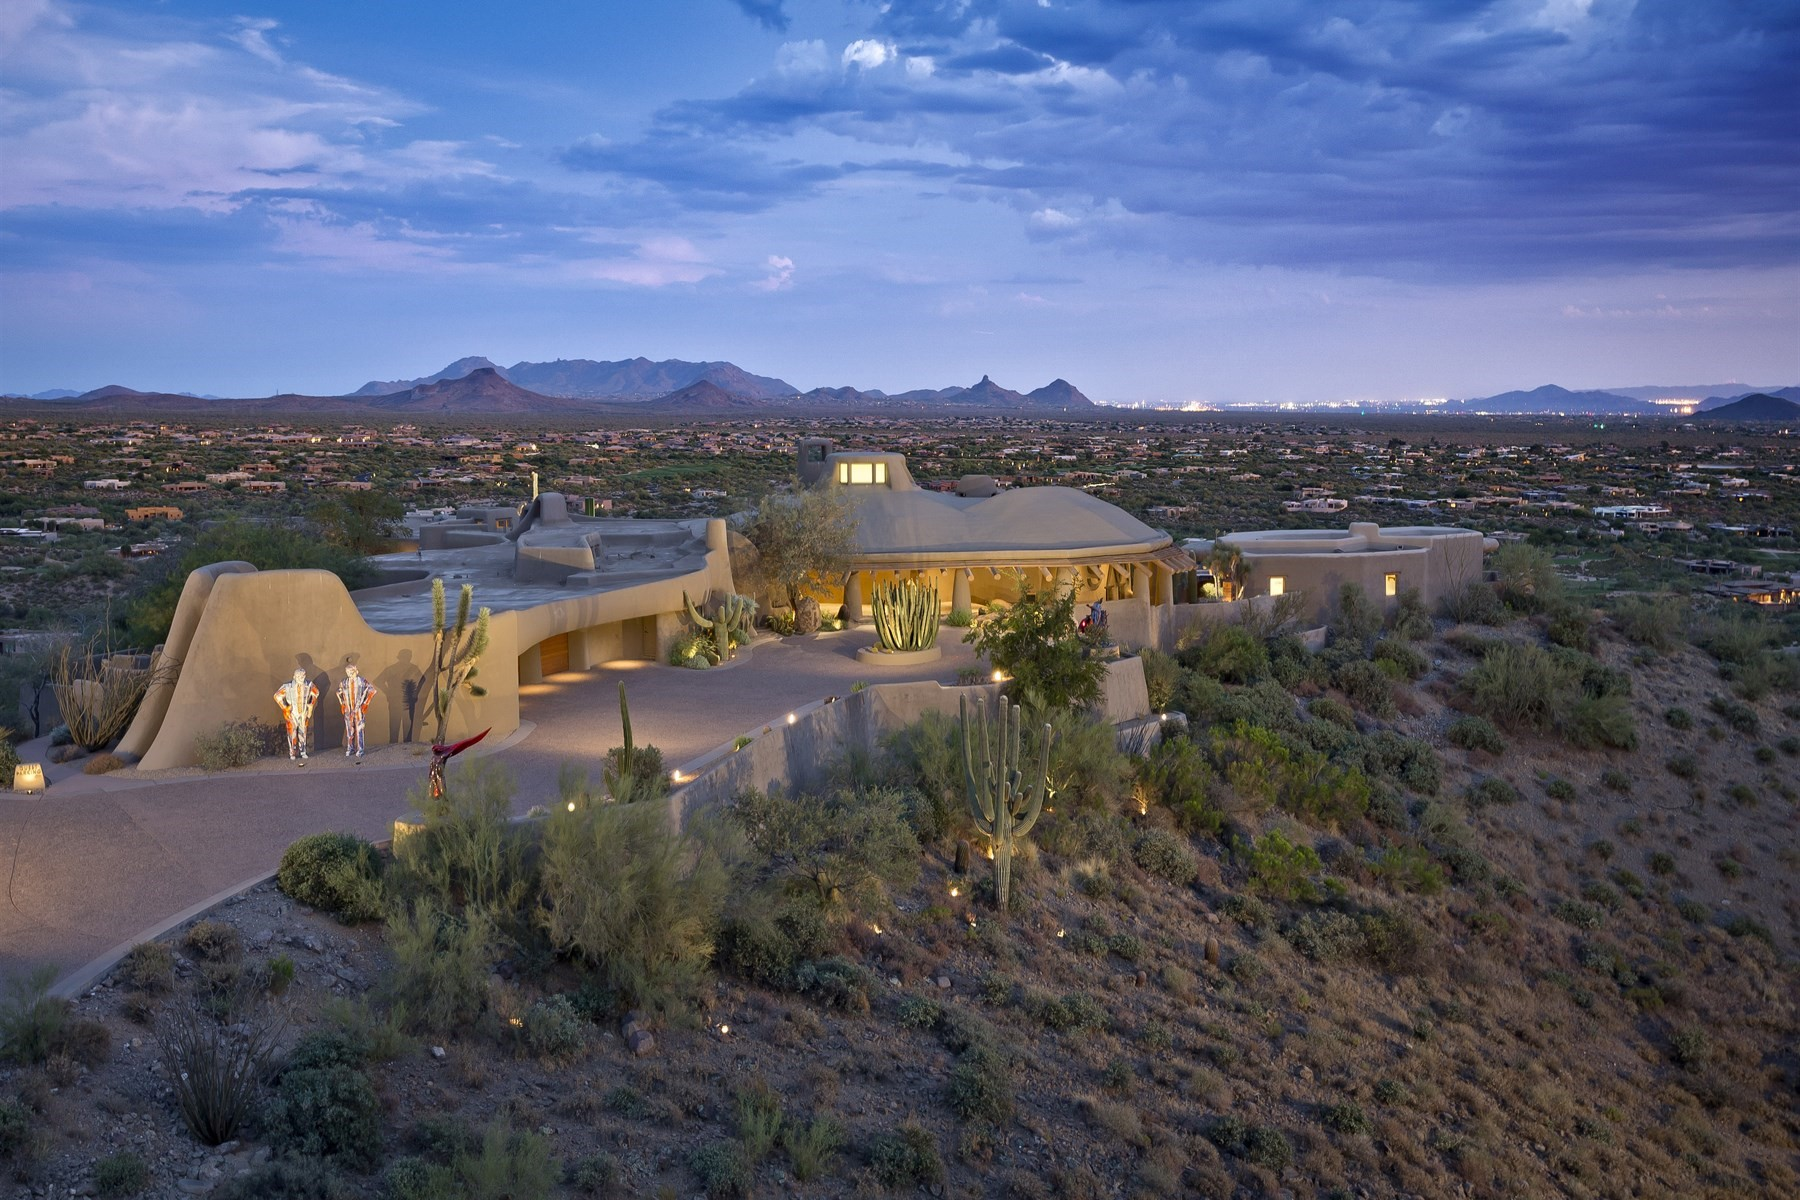 Casa para uma família para Venda às One-of-a-kind 15-acre estate that towers over the valley 39029 N Alister McKenzie Dr Scottsdale, Arizona, 85262 Estados Unidos